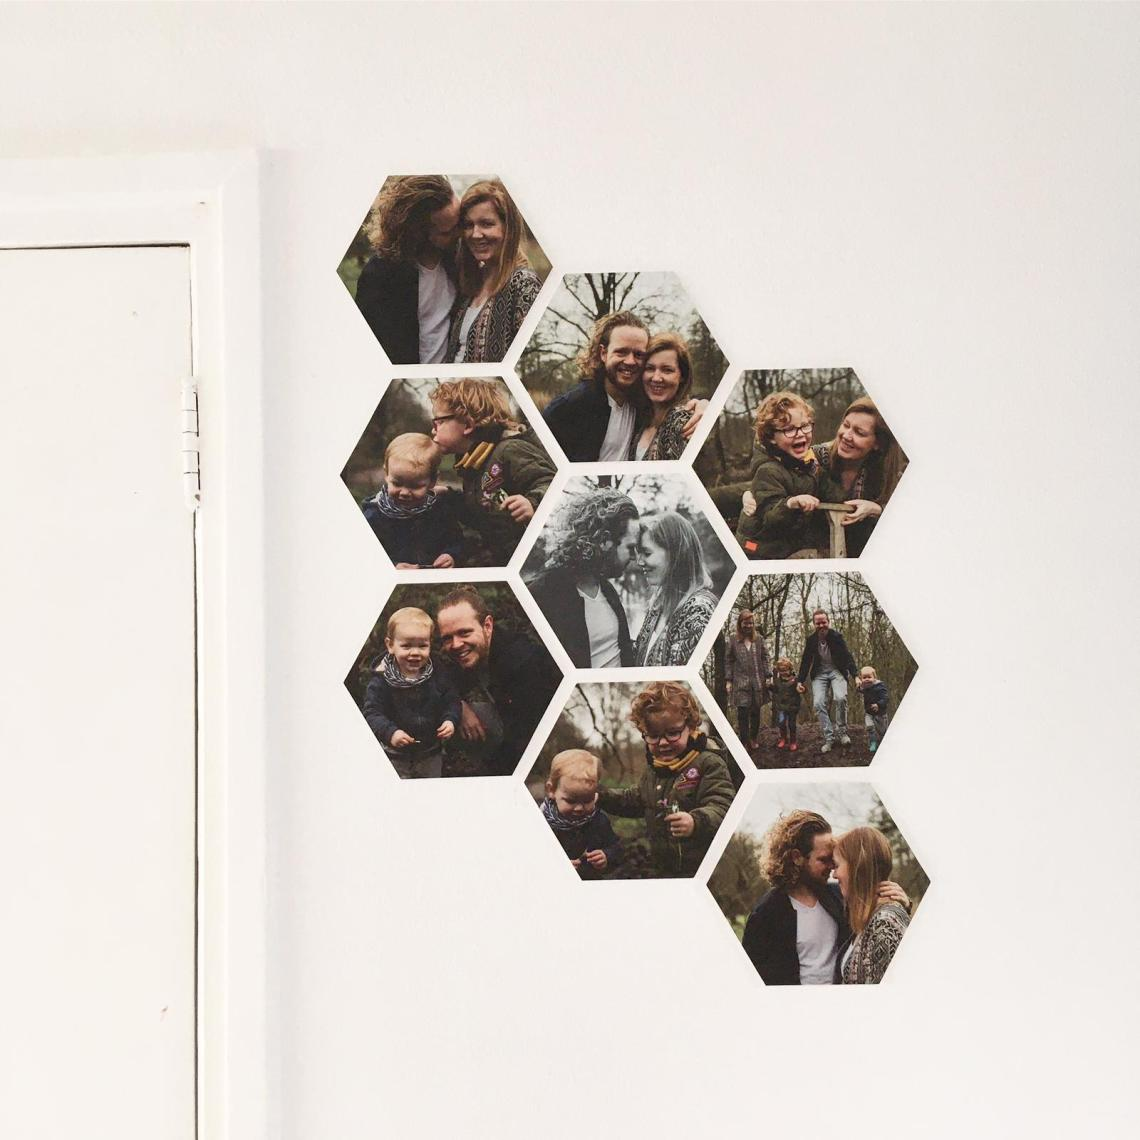 Foto op hexagon